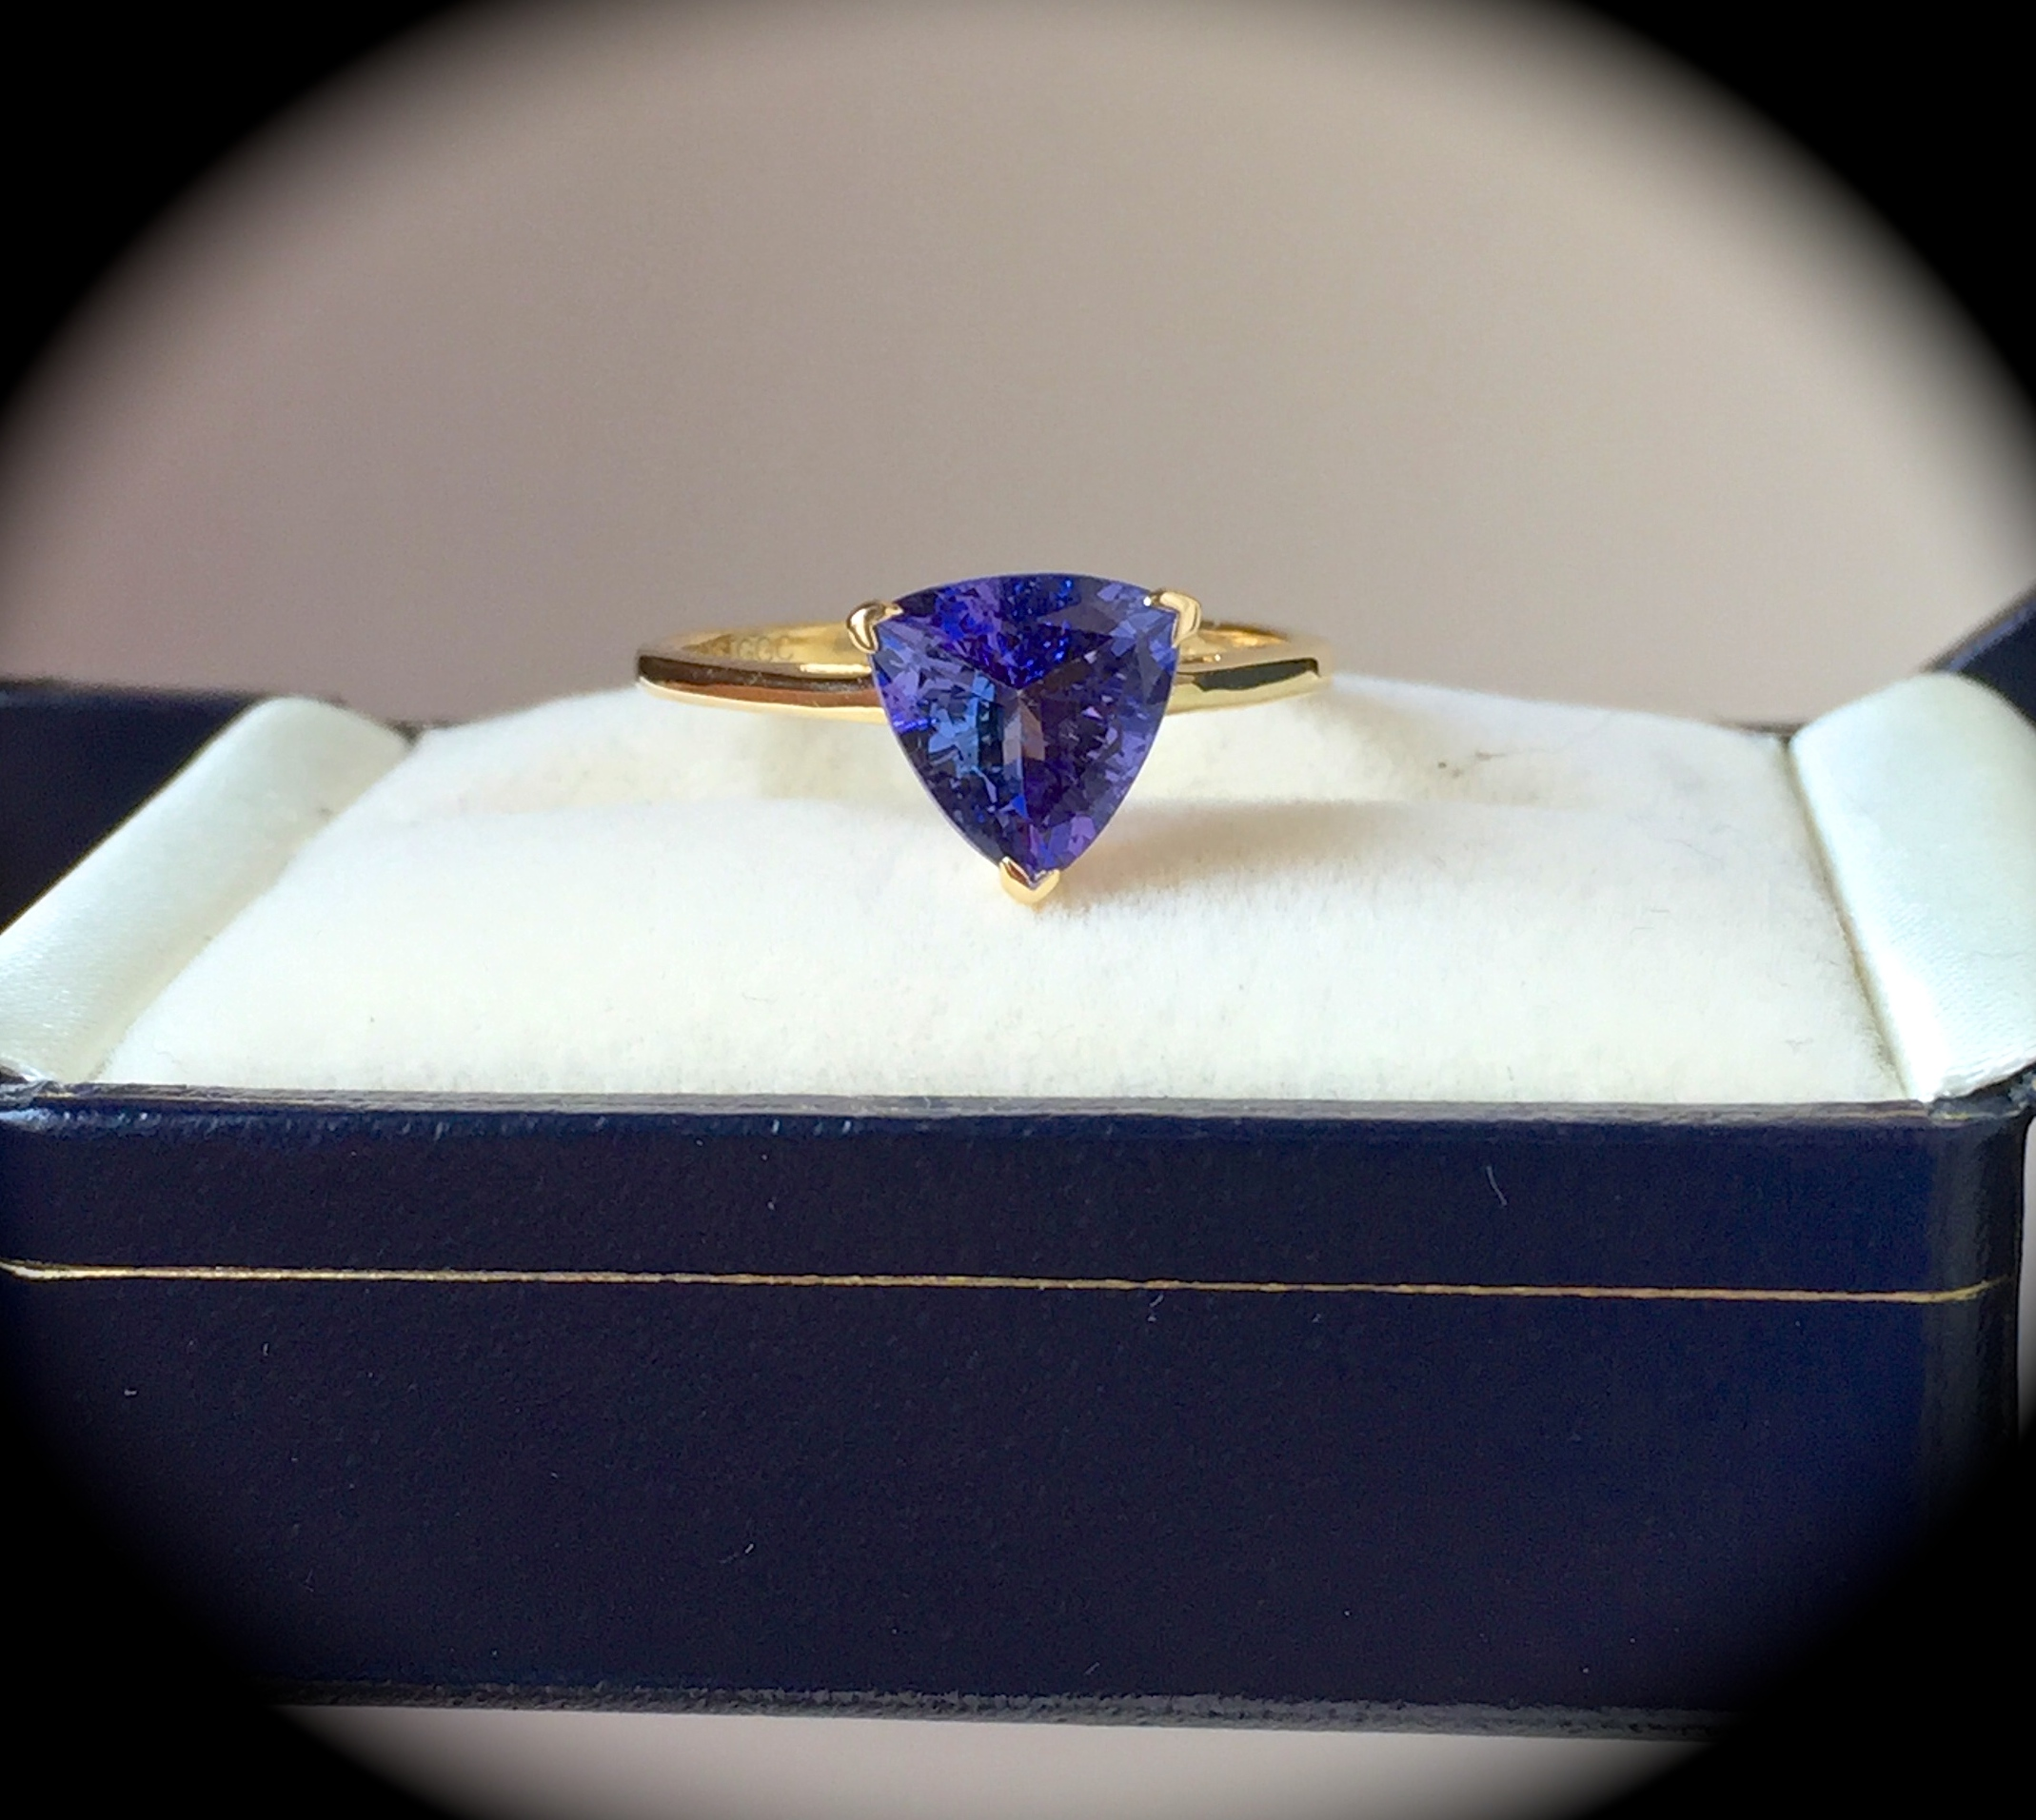 grade d violet great certified pear block liquidity ct gia blue tanzanite gemstone itm natural aaa easy color cut investment